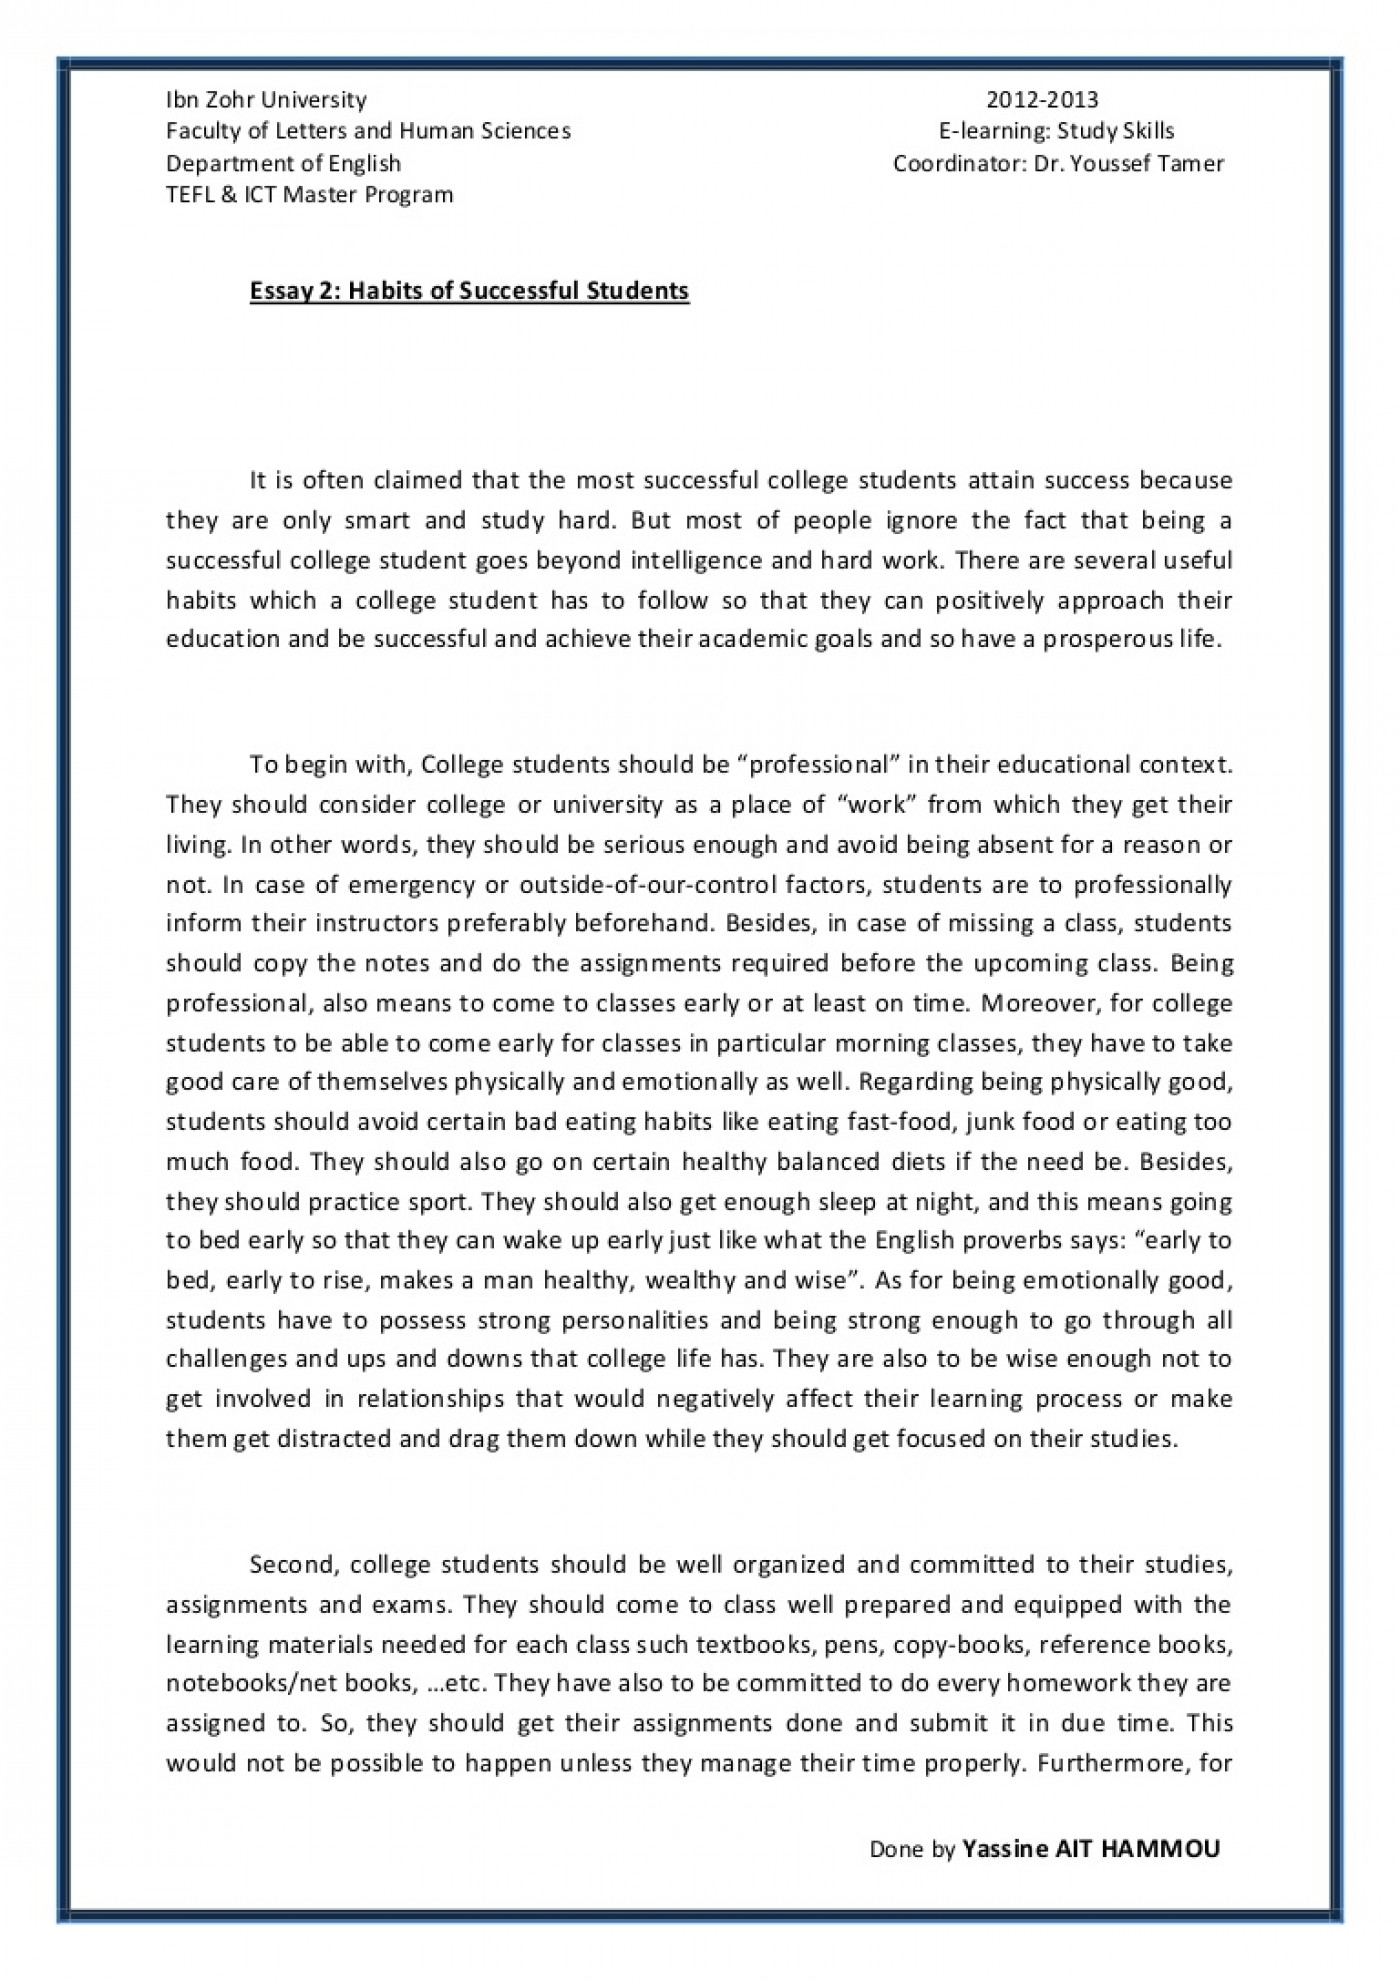 Essay compare and contrast between man and woman